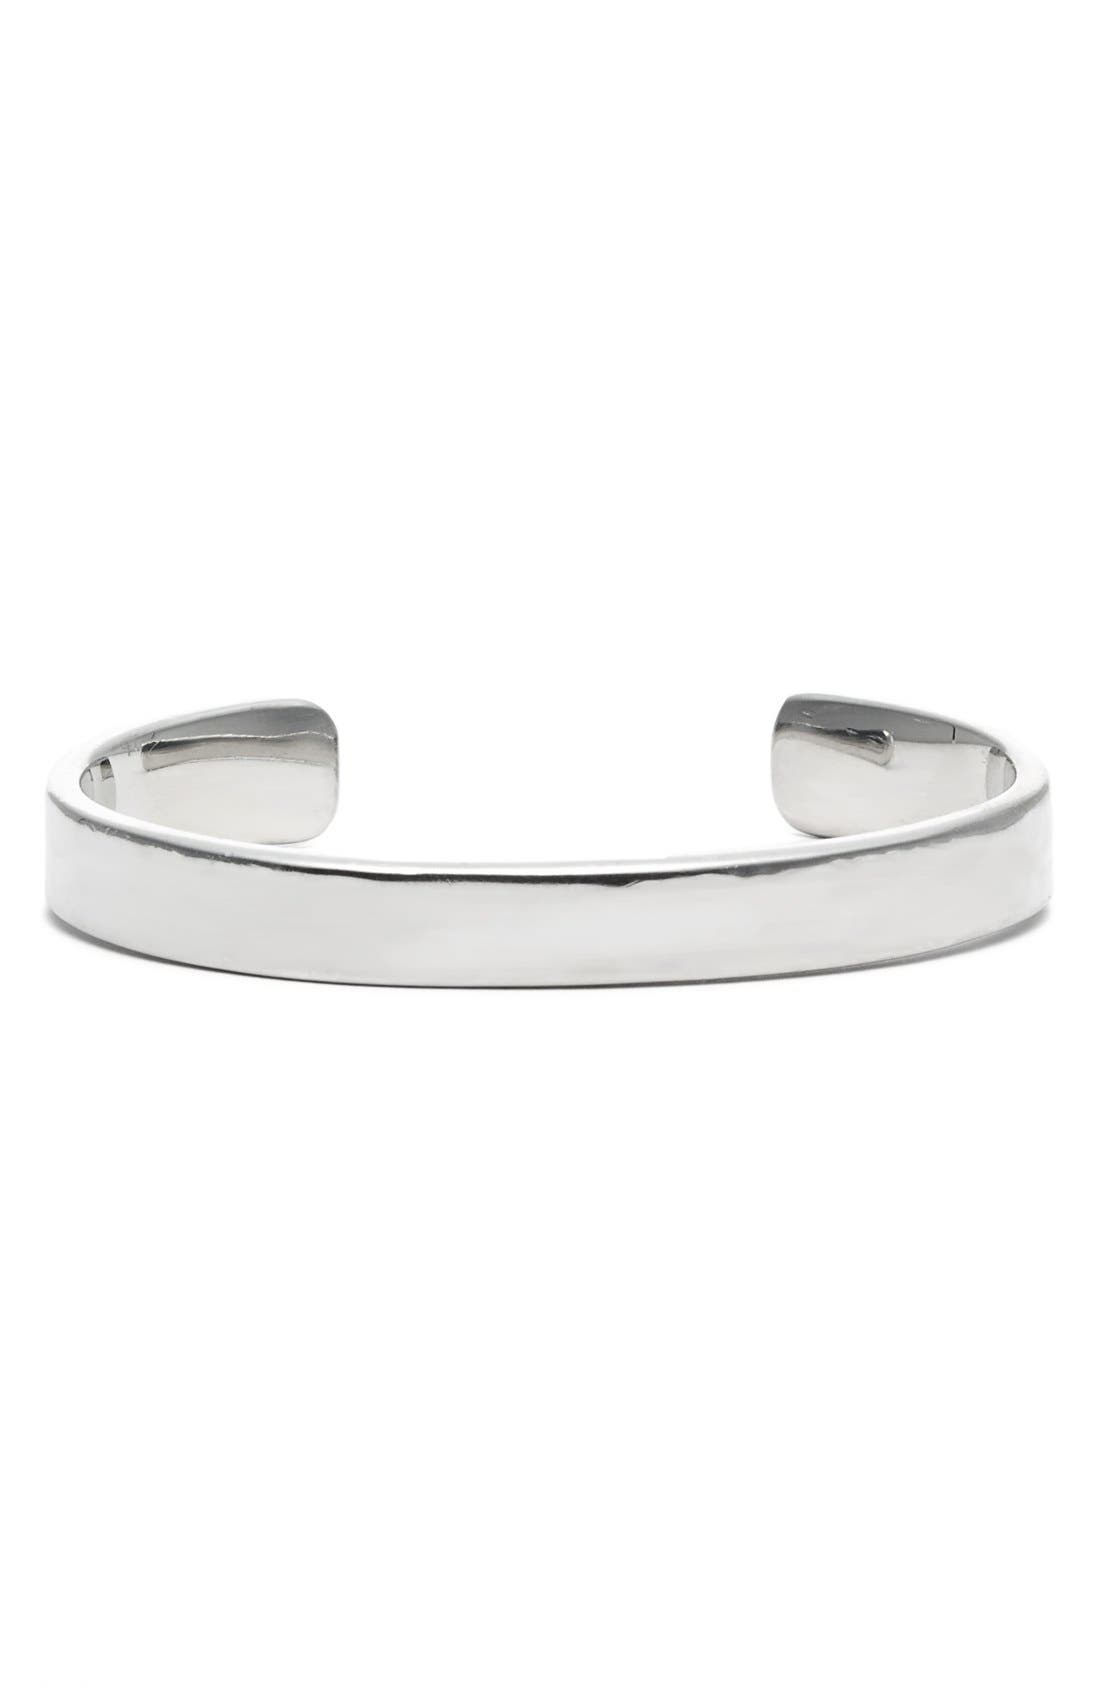 Alternate Image 1 Selected - Nordstrom Thin Wrist Cuff